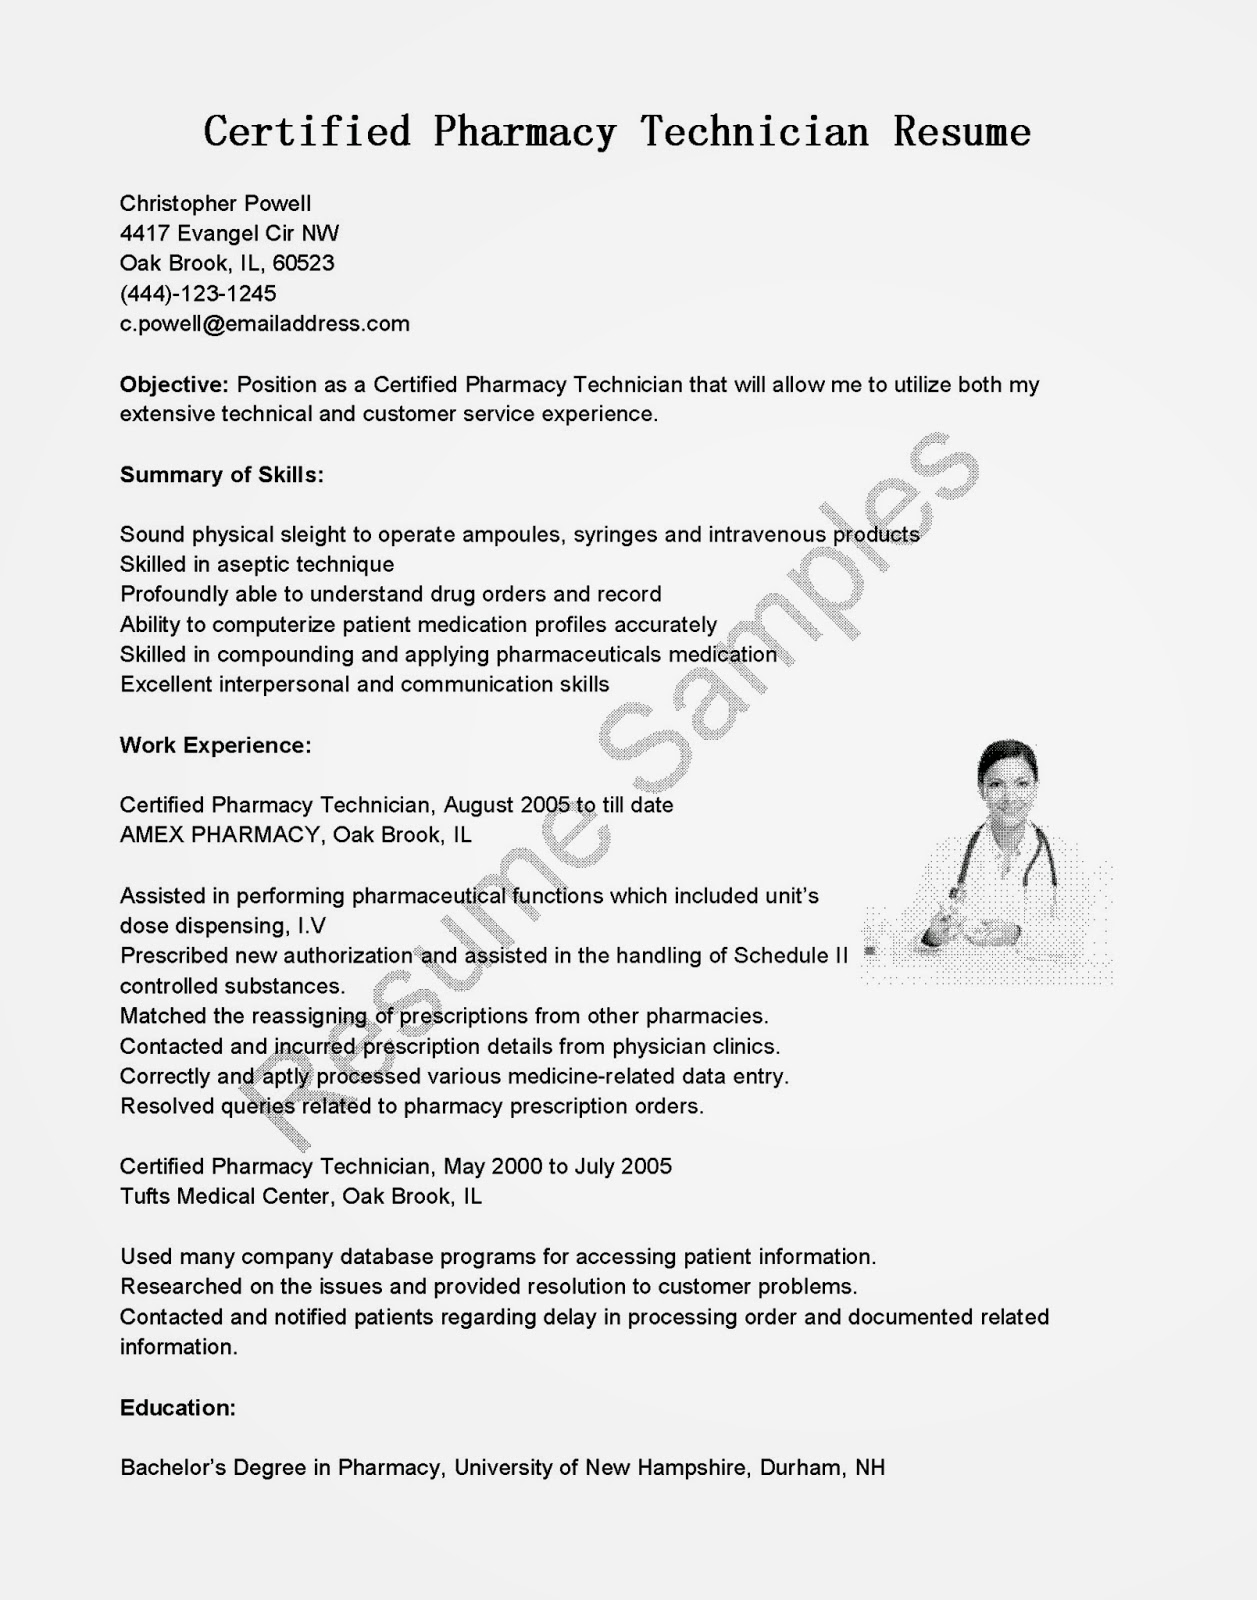 Examples Of Pharmacy Technician Resumes Resume Samples Certified Pharmacy Technician Resume Sample